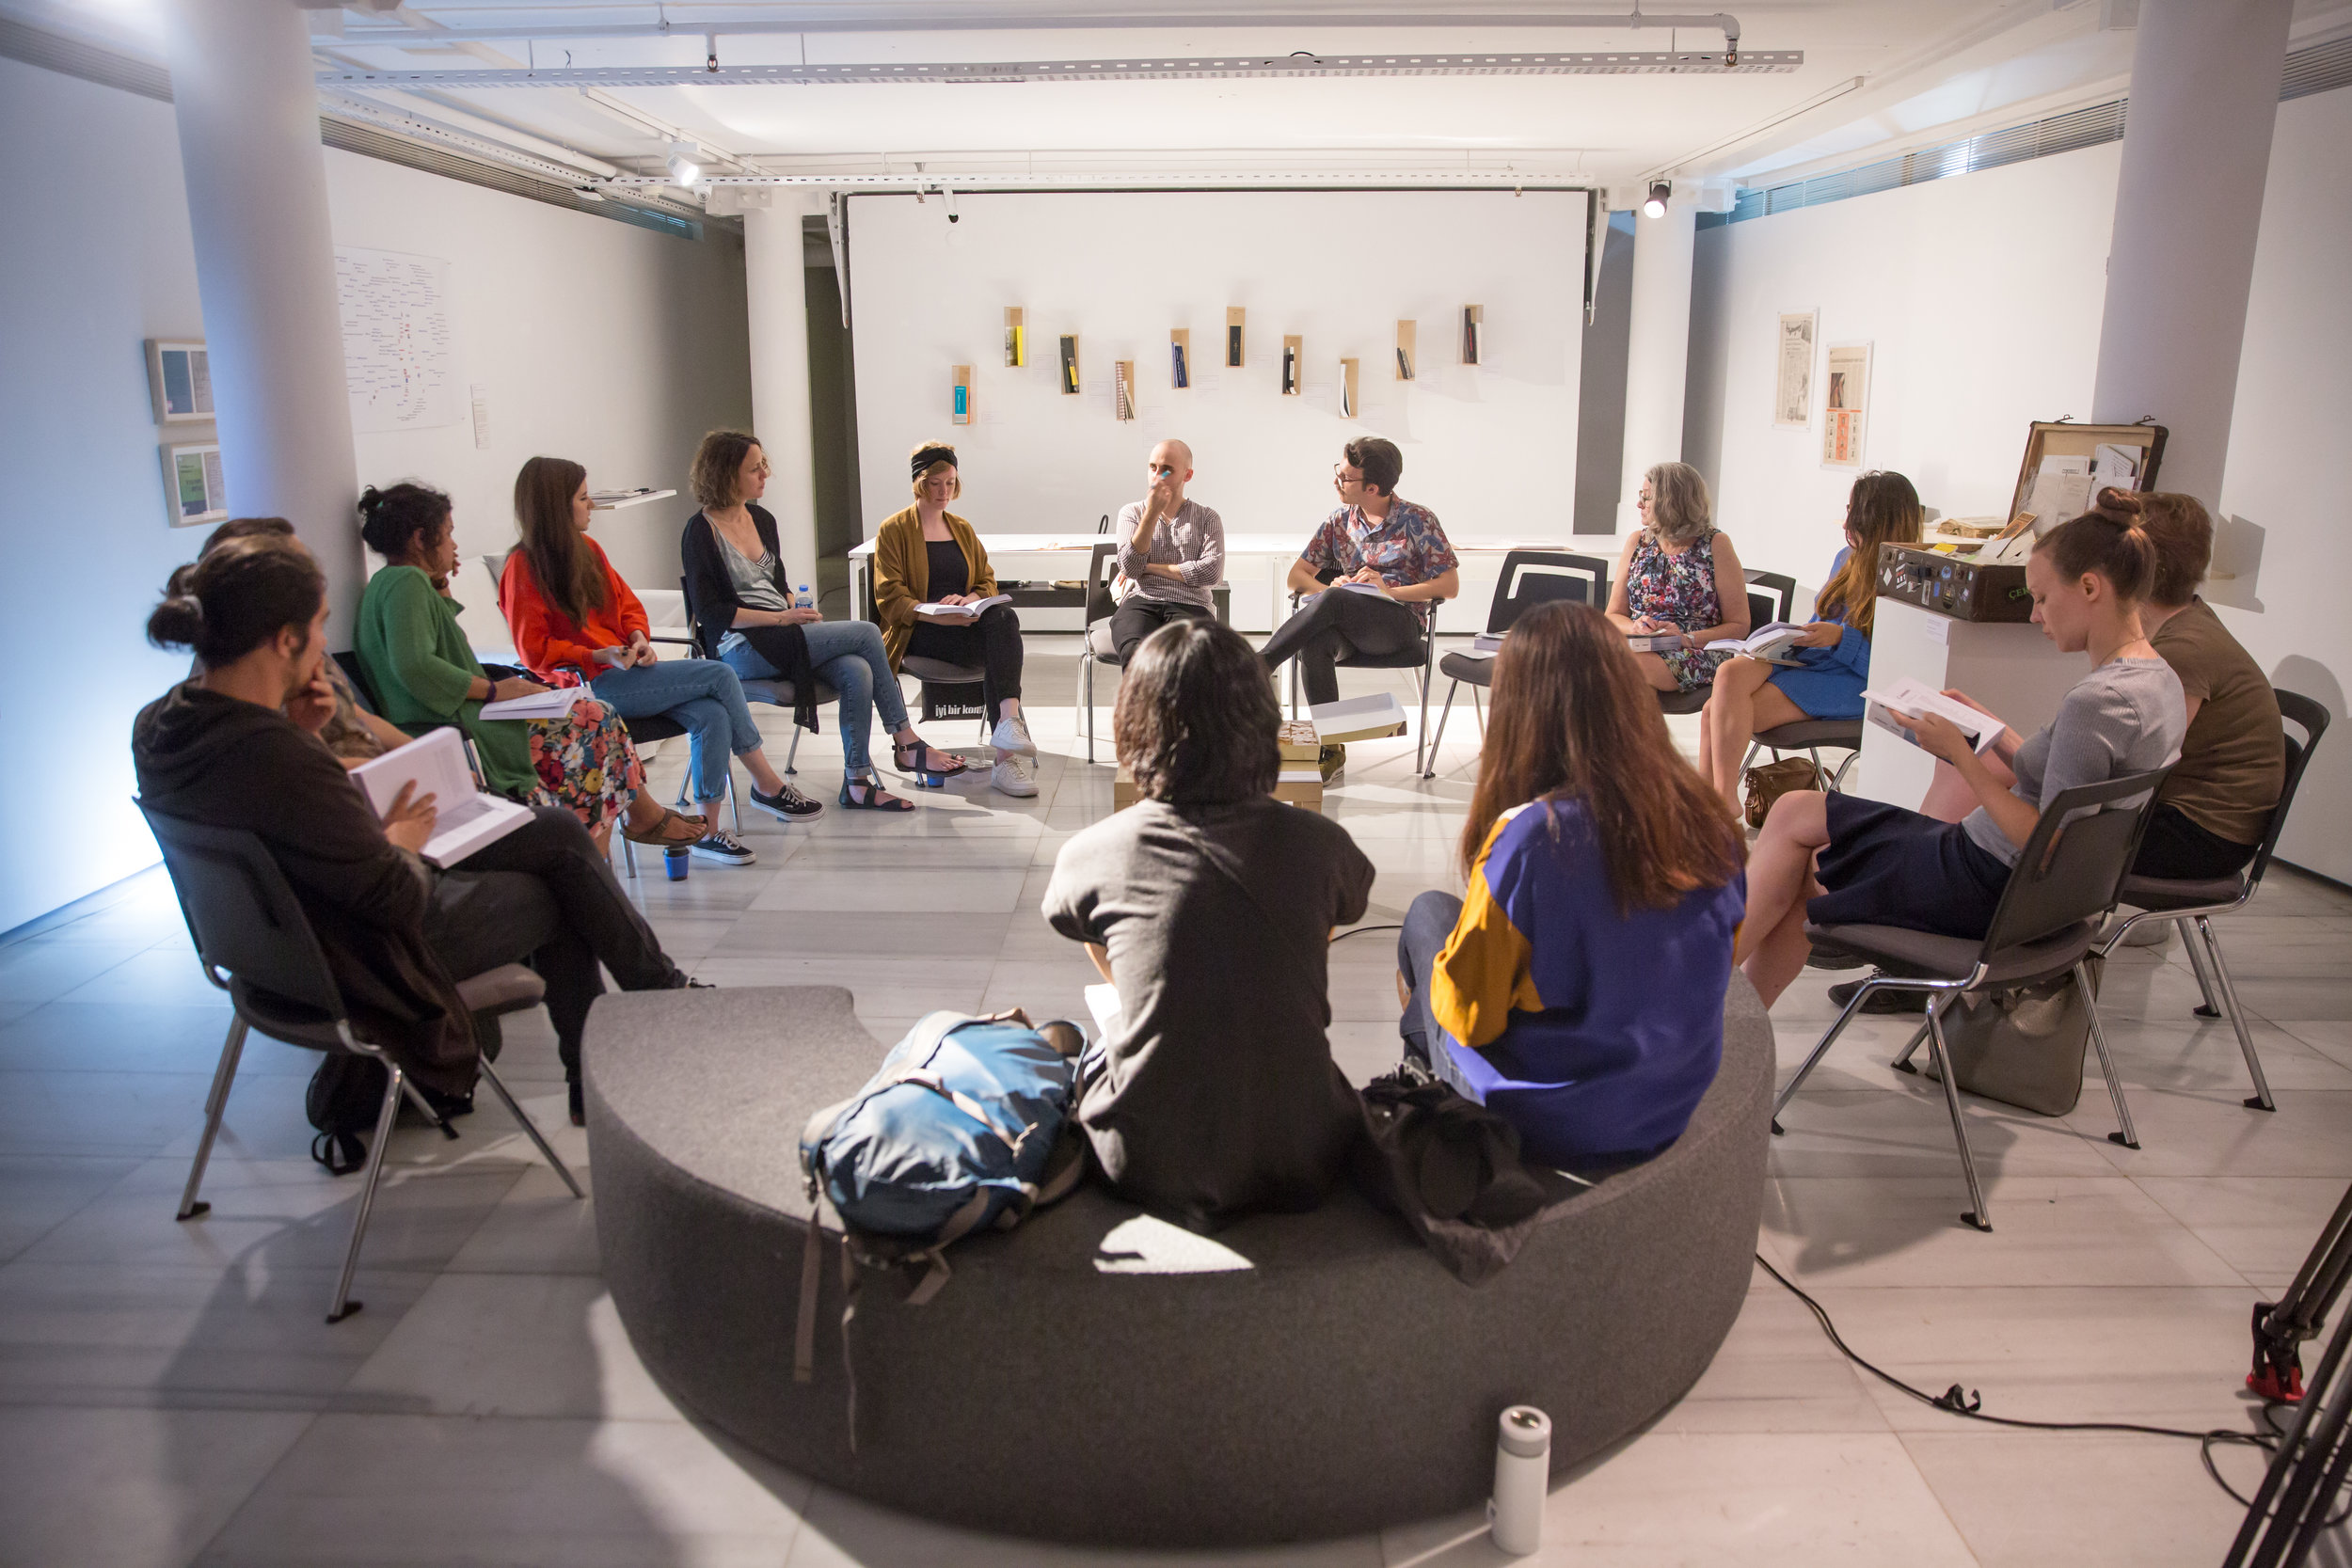 Photos from the first gathering of Collective Çukurcuma reading group as part of the public program of the 15th Istanbul Biennial. On September 21, 2017. Moderated by Serhat Cacekli and featuring Zeyno Pekünlü, artist and coordinator of the public program of the biennial, and Sofie Krogh Christensen, assistant curator of the biennial.  (Photos By Fatih Küçük)